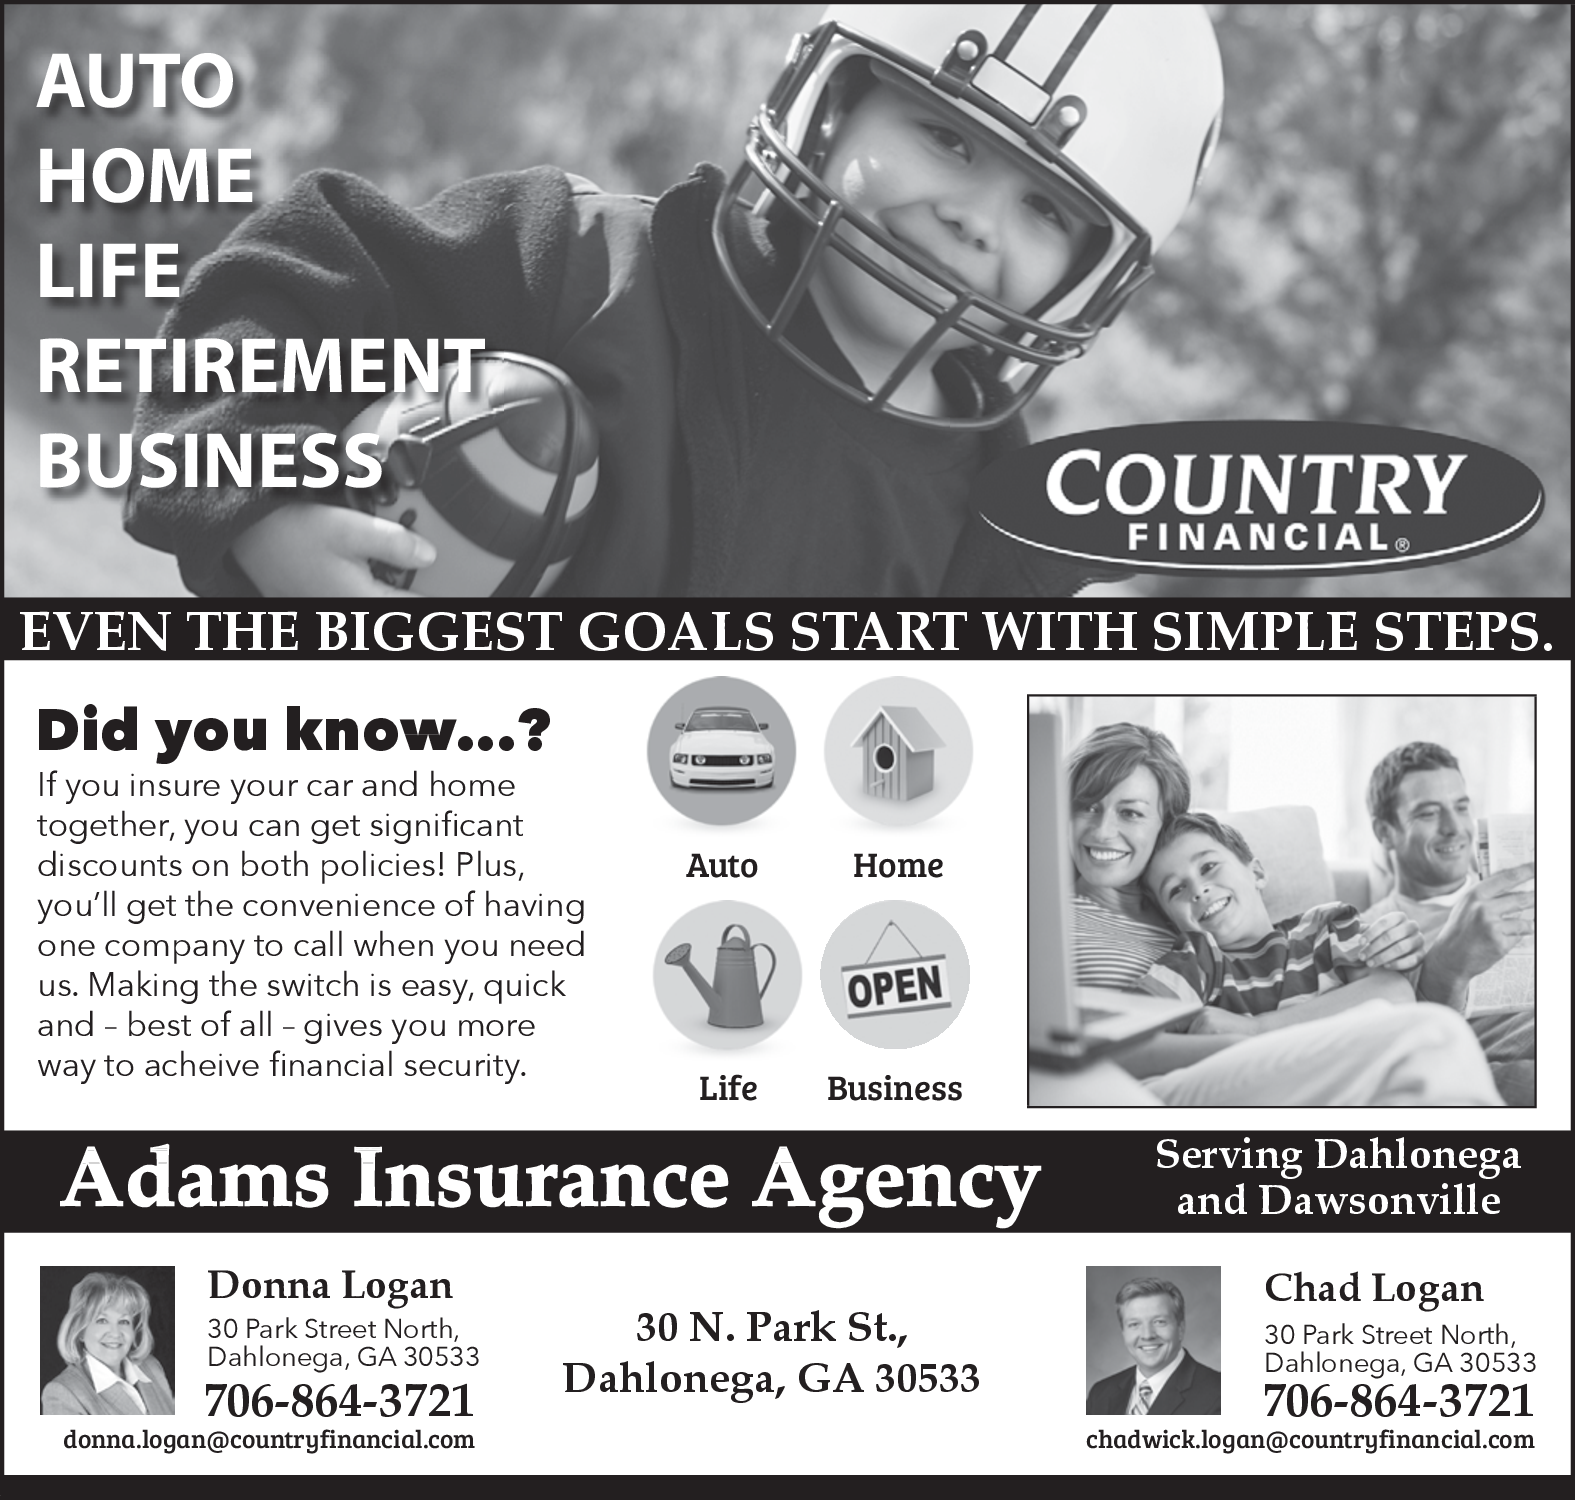 Country Financial Car Insurance >> Country Financial Services For Auto Home In Dahlonega Ga